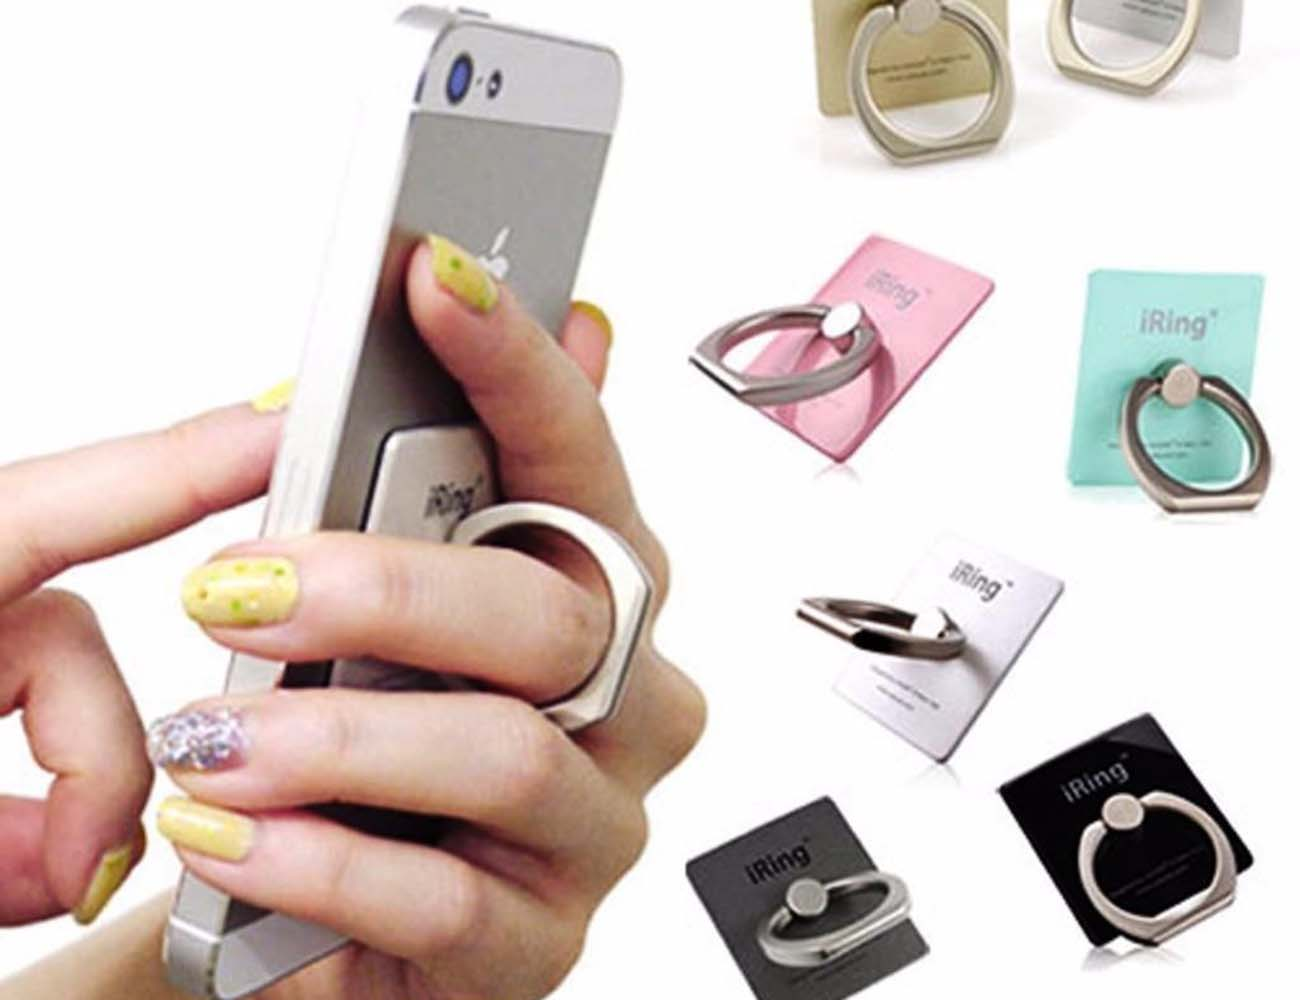 Universal Smart Ring iPhone Holder by iRing